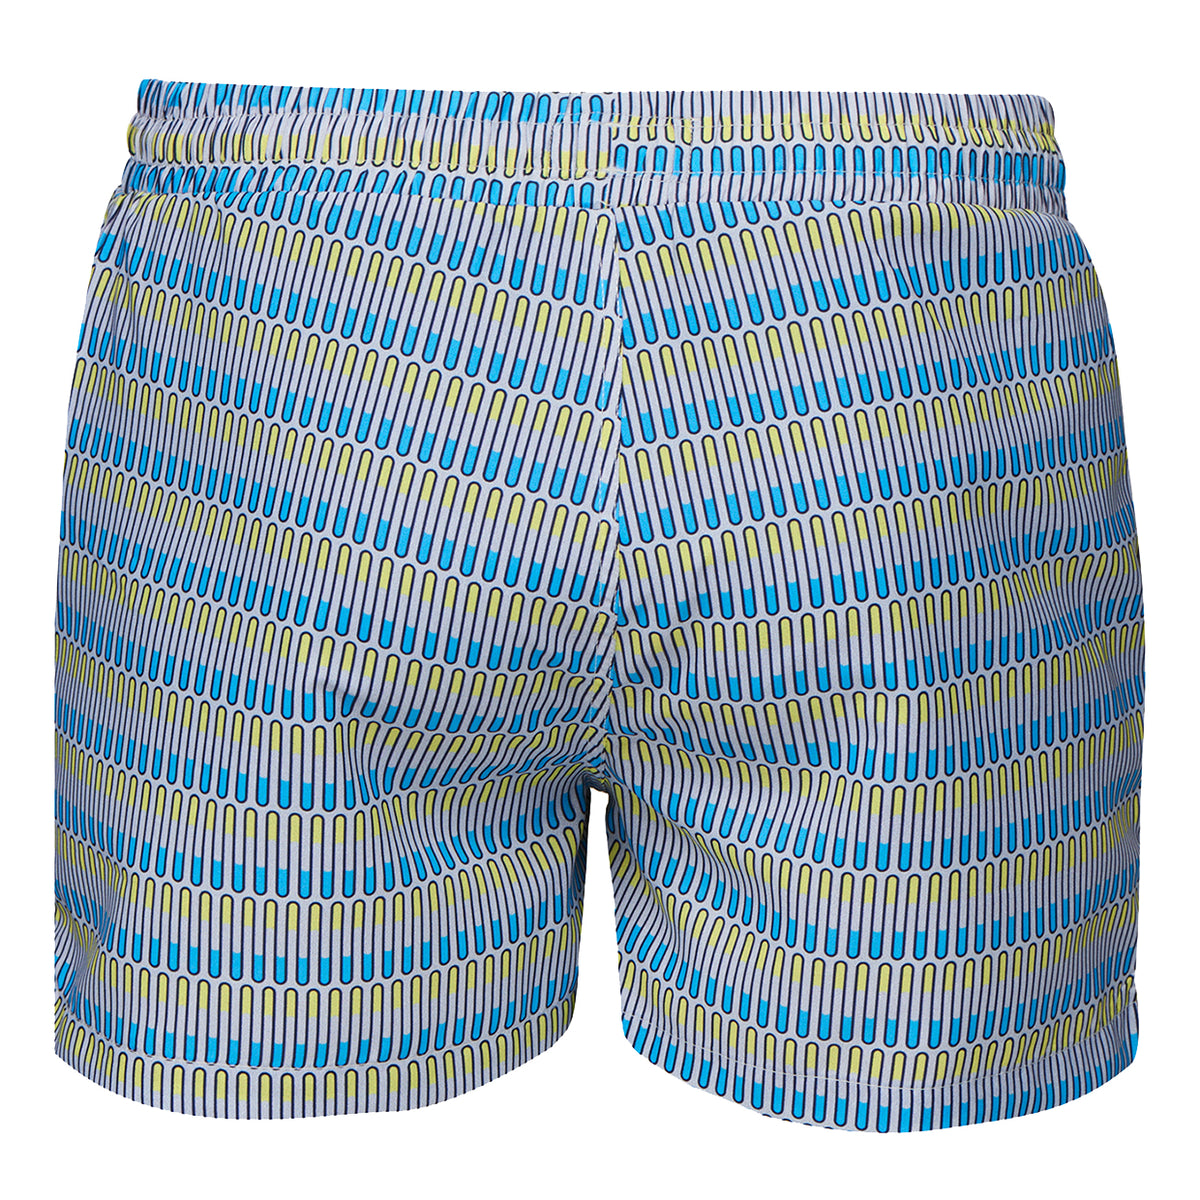 Breeze Swimshort - background::white,variant::Norse Wave